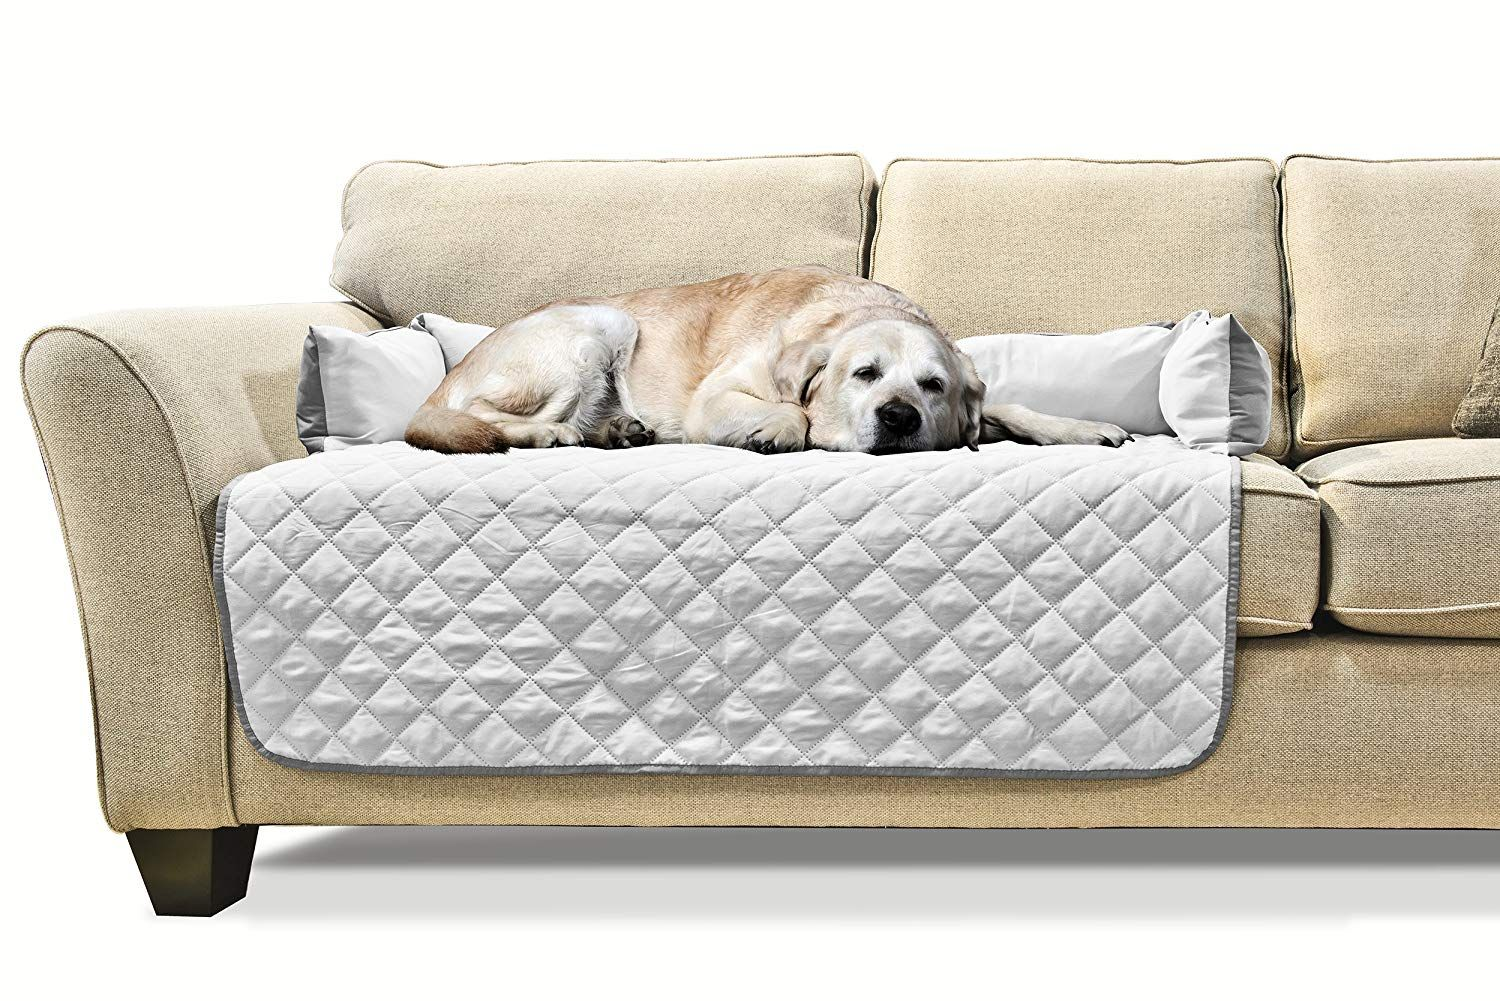 Groovy Furhaven Sofa Buddy Reversible Pet Bed Furniture Cover Machost Co Dining Chair Design Ideas Machostcouk